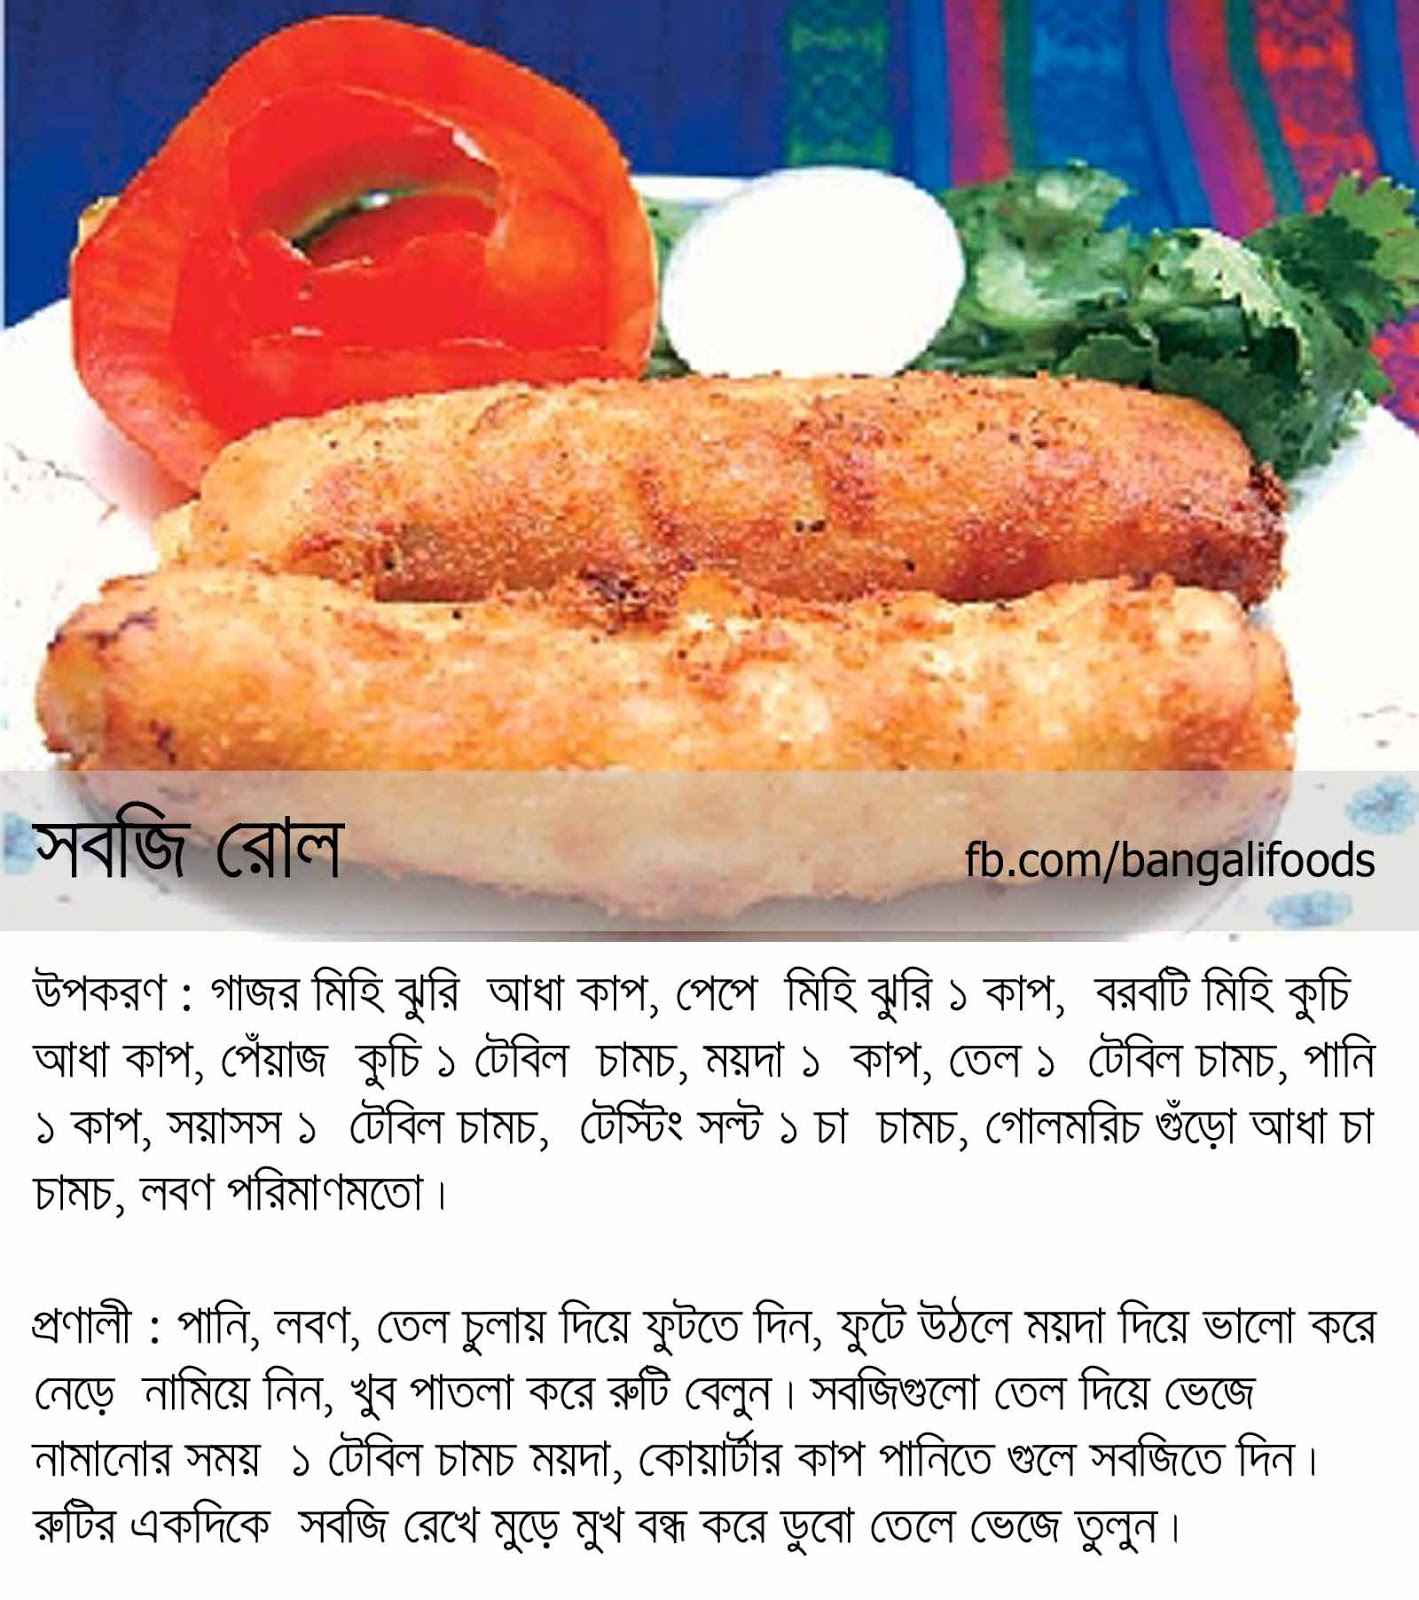 Bangali foods snack food recipes in bengali some easy and tasty snack food recipes in bengali language forumfinder Choice Image